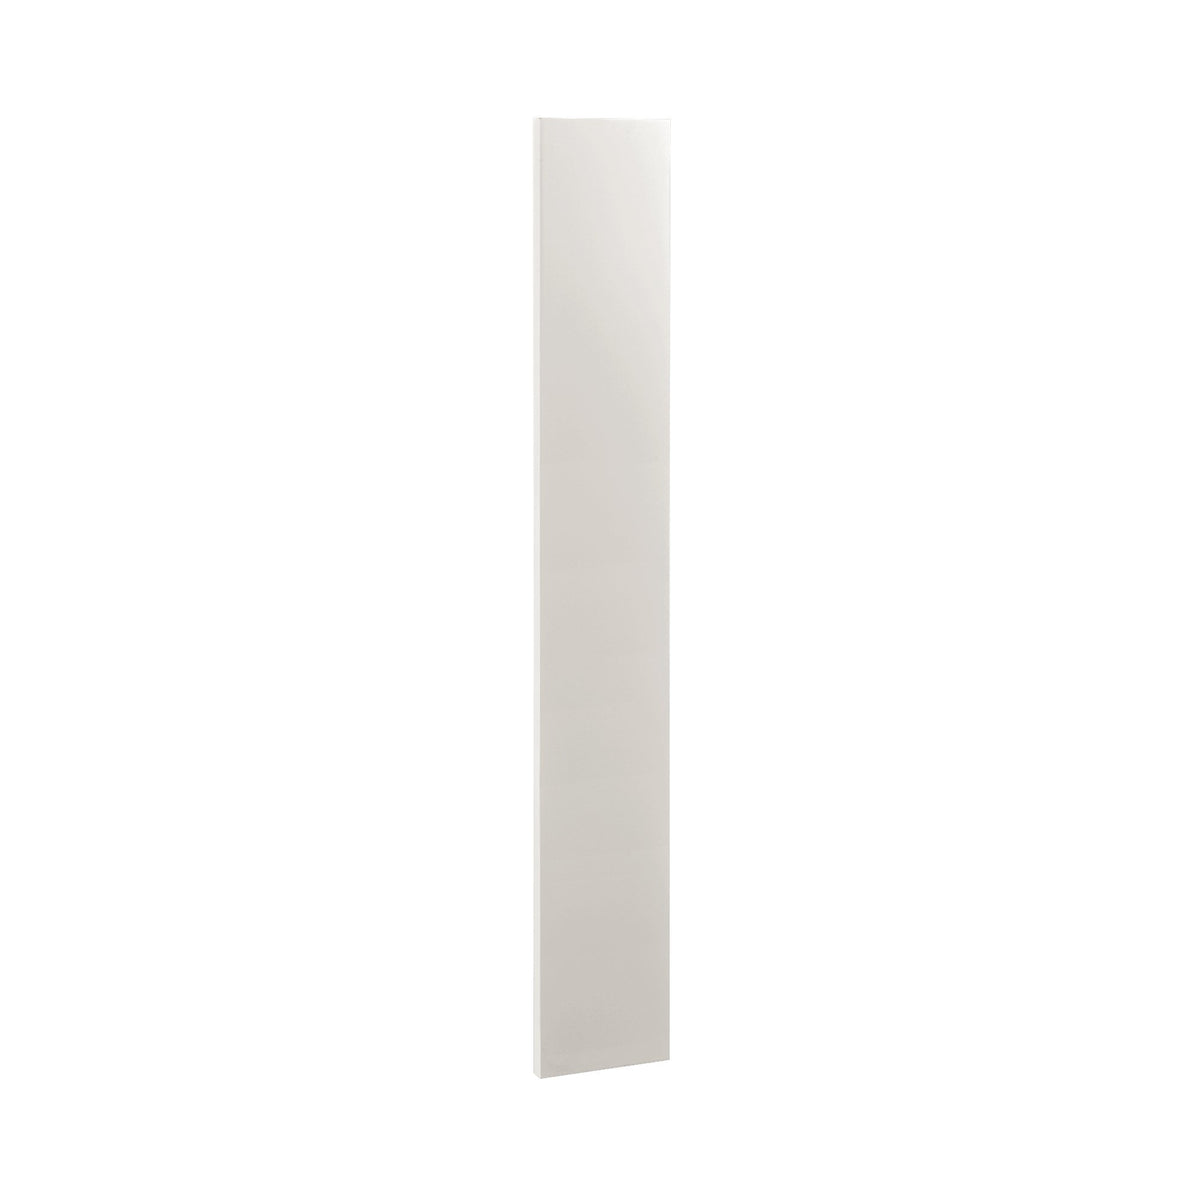 "Accessories Snow White Shaker Inset Wall Cabinet Filler Trim Pieces - 3"" W x 30"", 39"" & 96"" D1WF330 Inset Kitchen Cabinets"